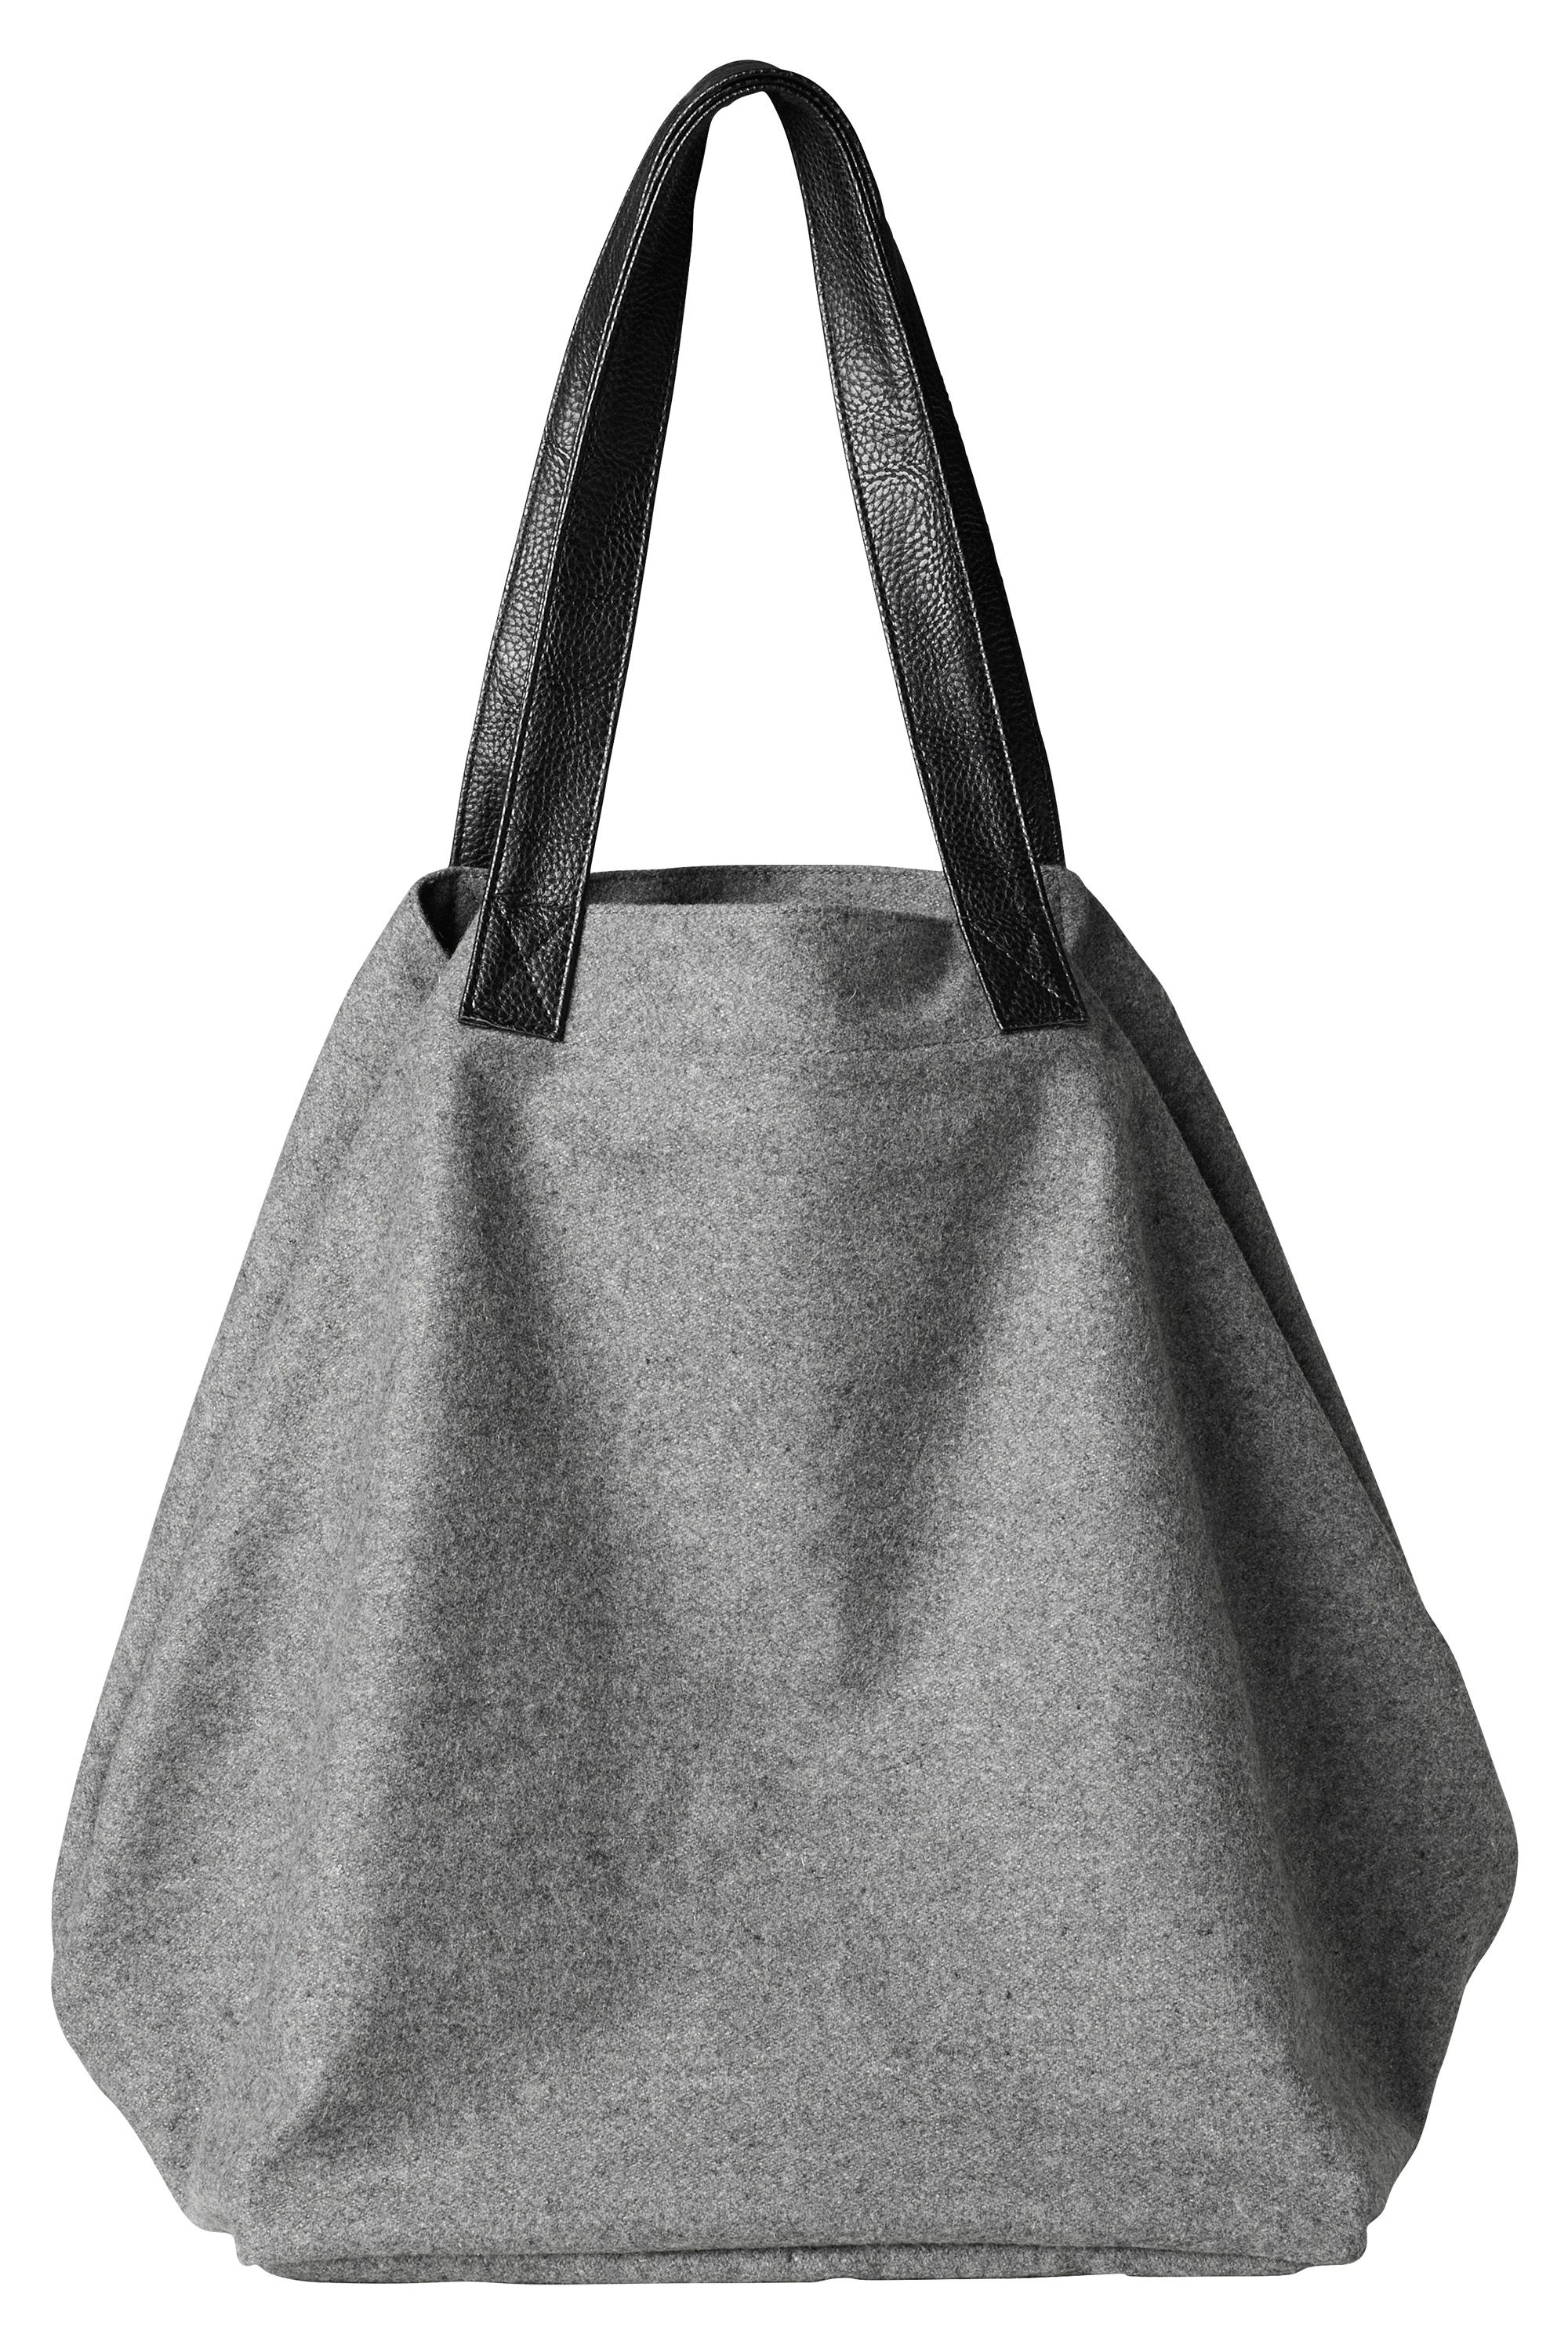 Cool, clean, wooly material with contrast black leatherette handles give this slouchy 'wear it everywhere' bag a winter chic update.